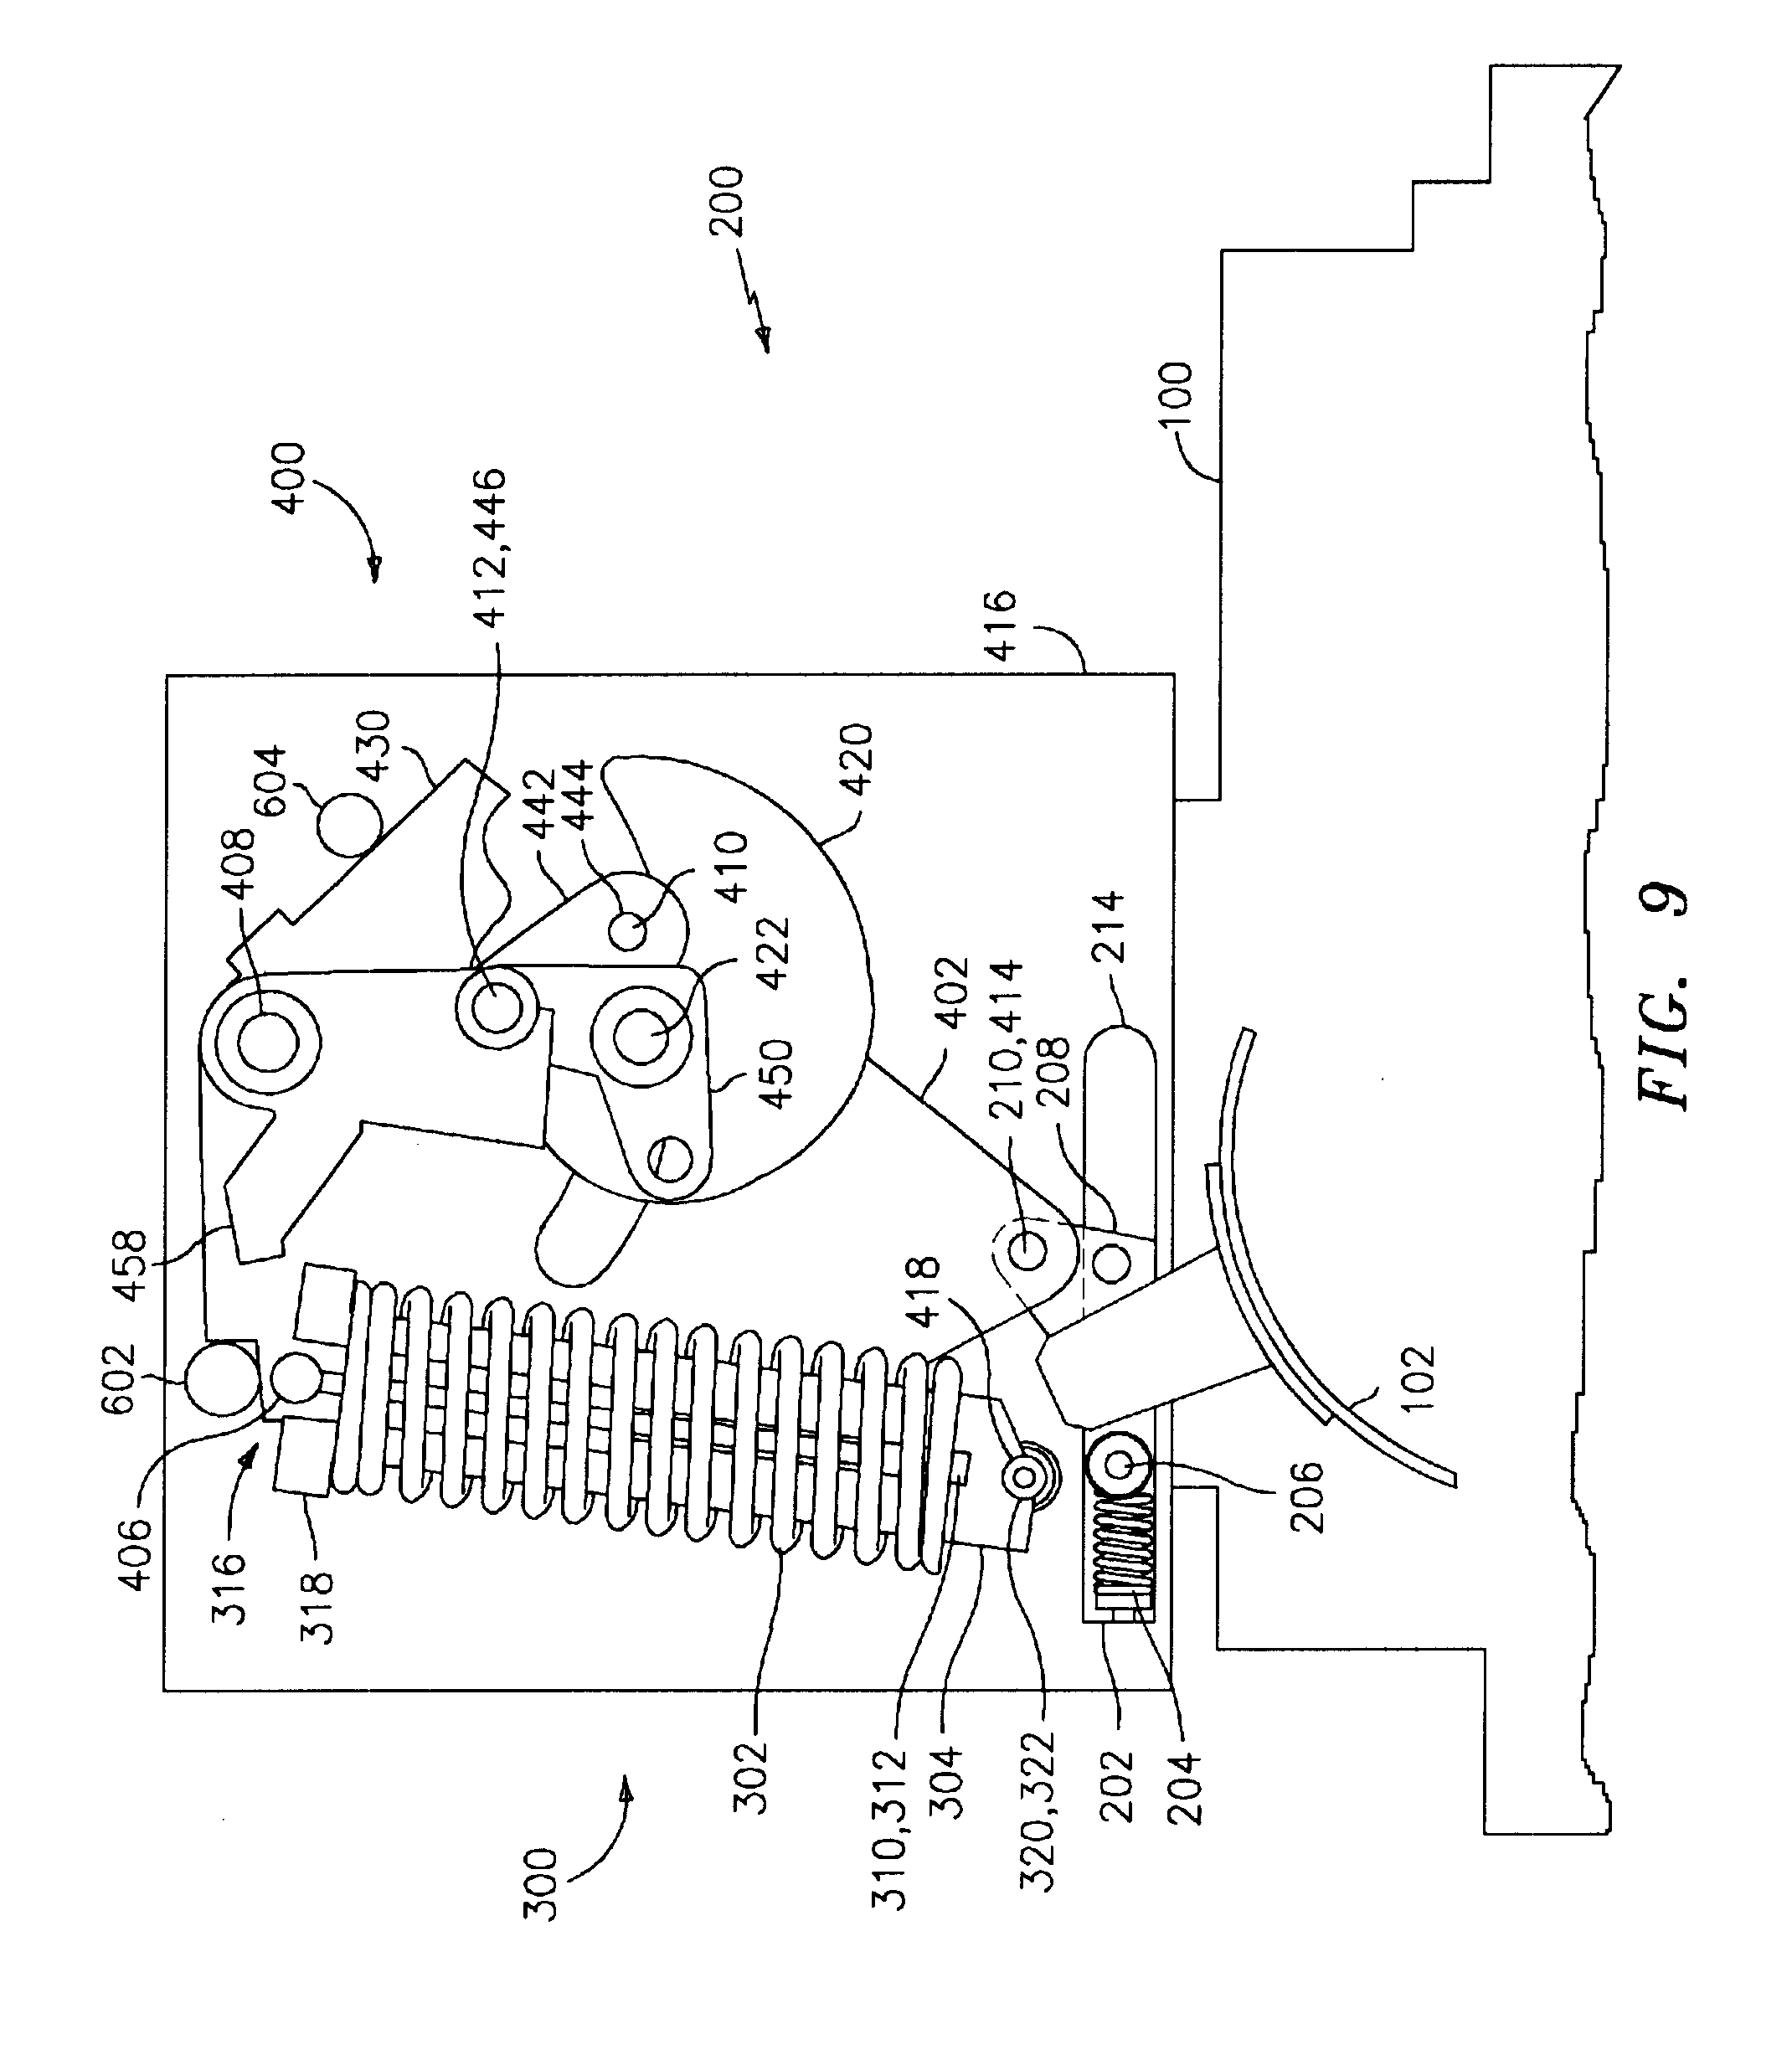 d latch diagram  d  free engine image for user manual download